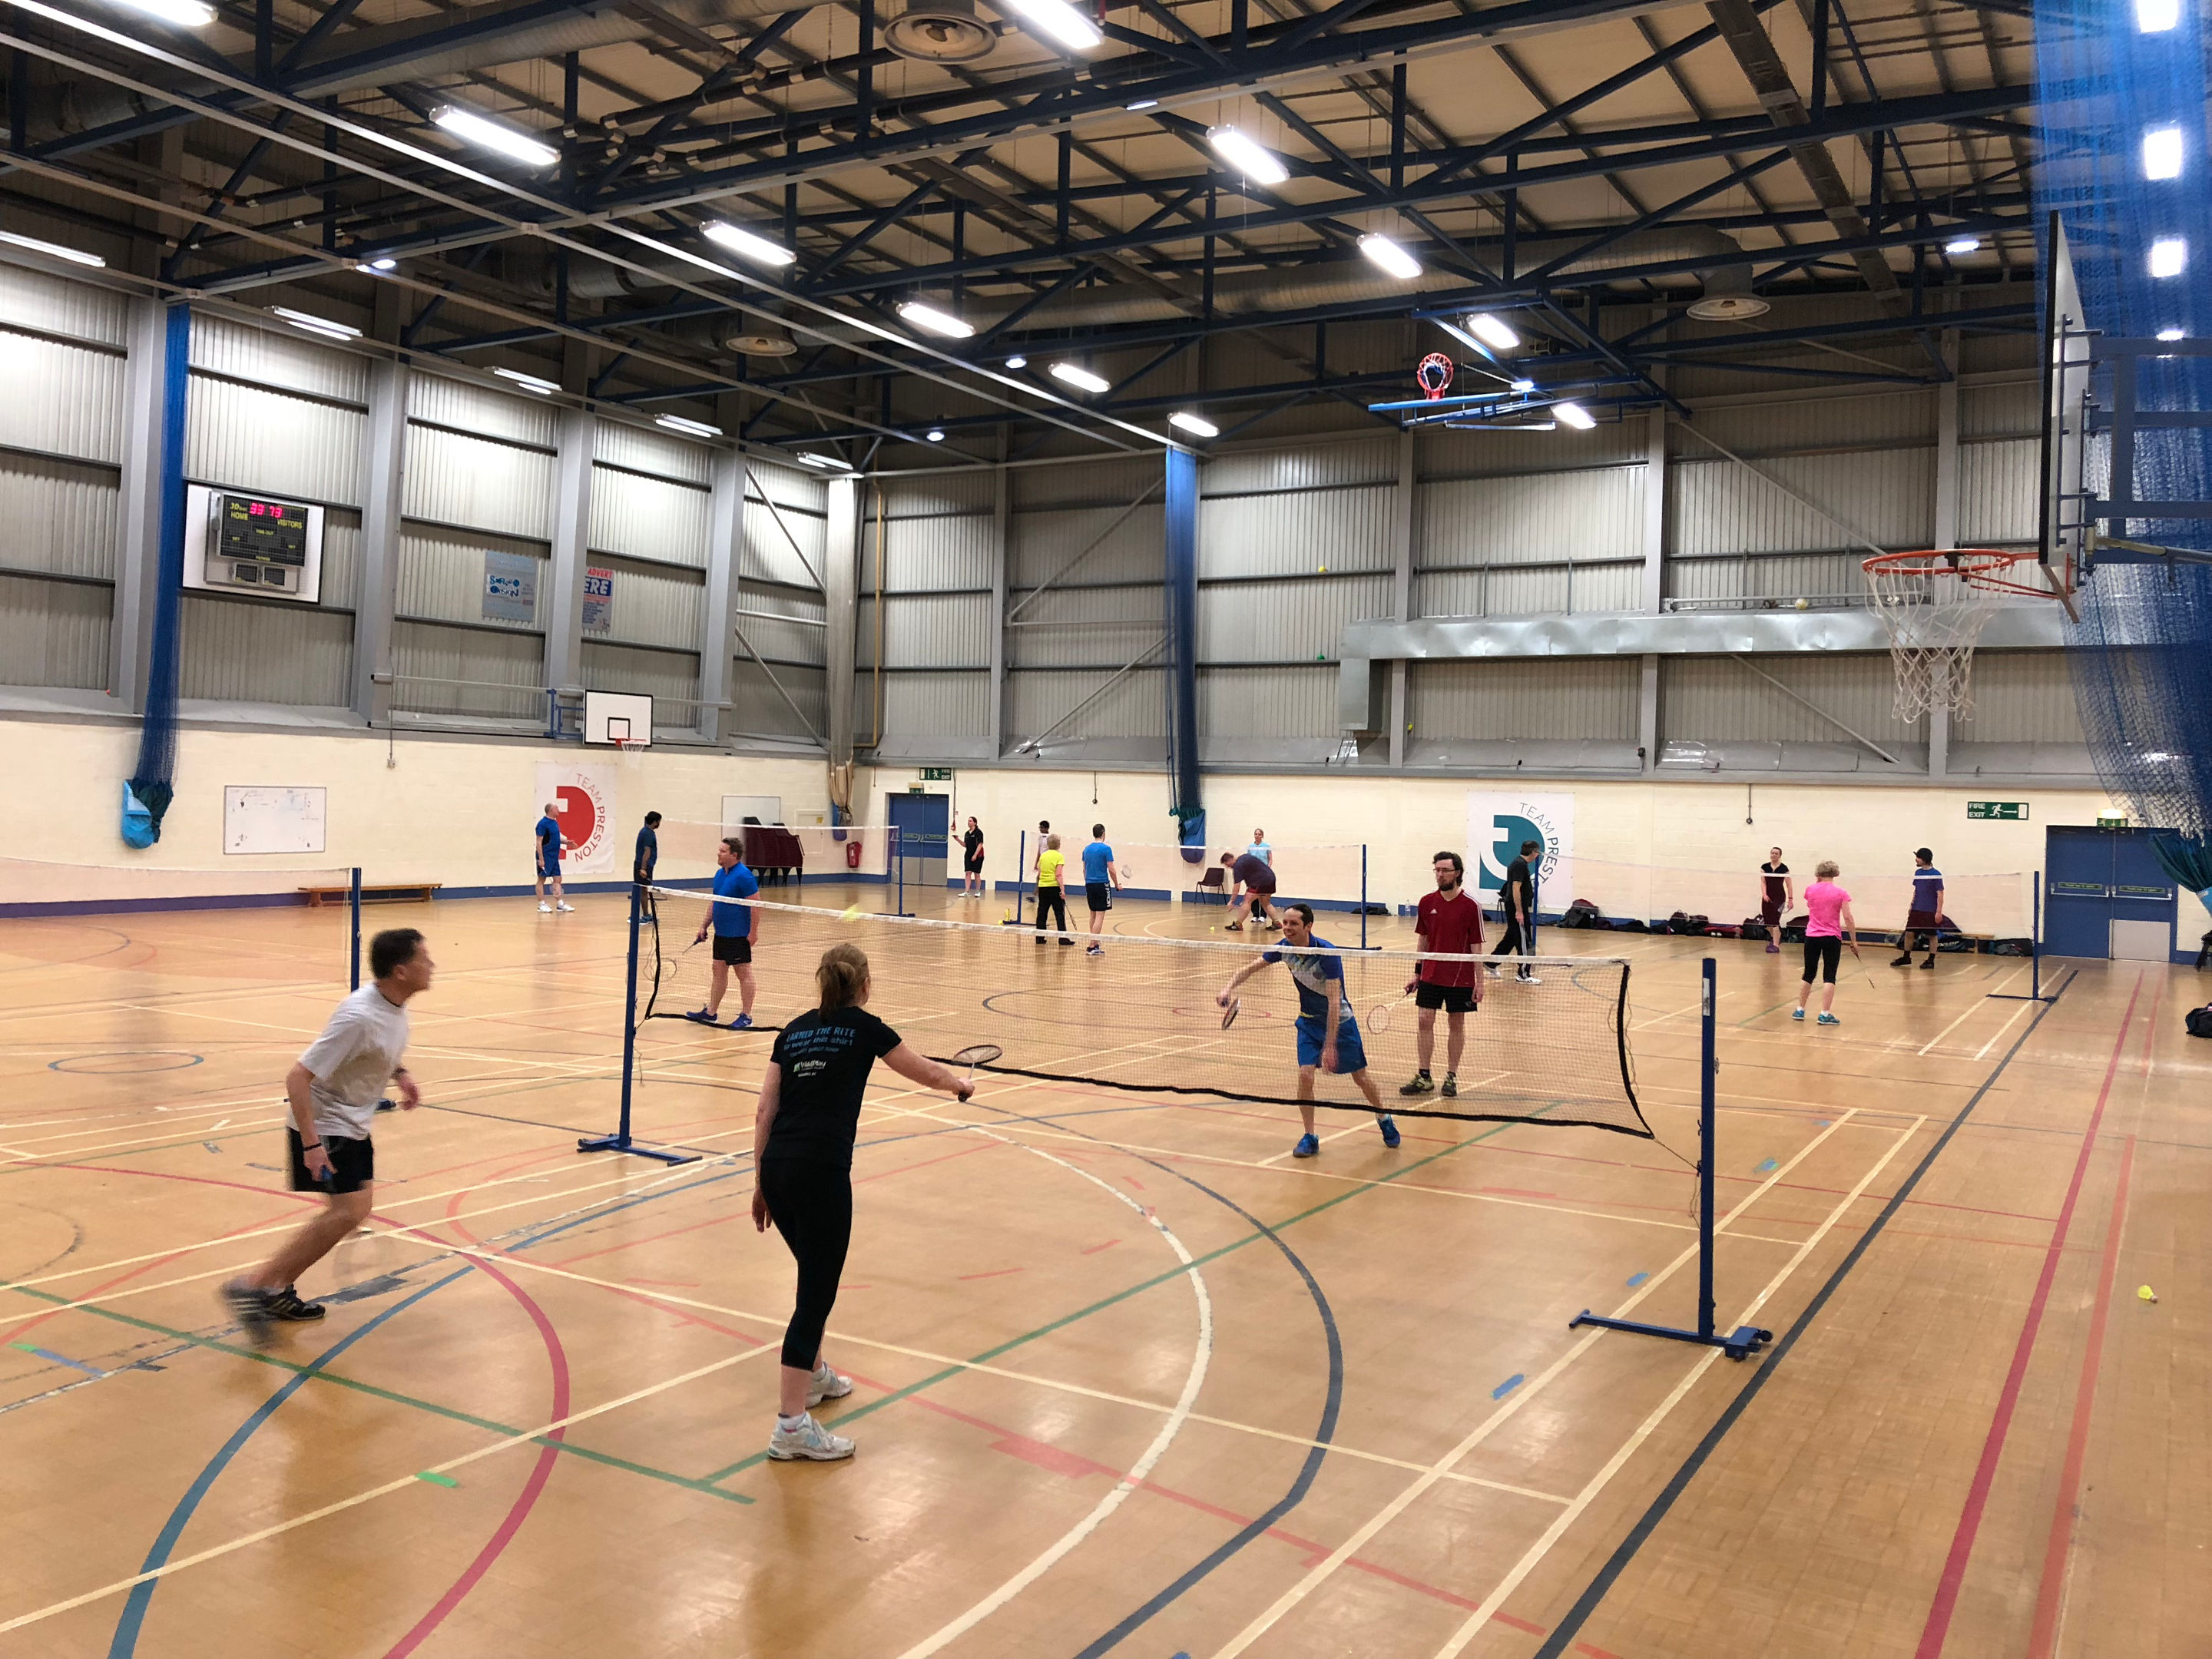 Badminton at Preston's College